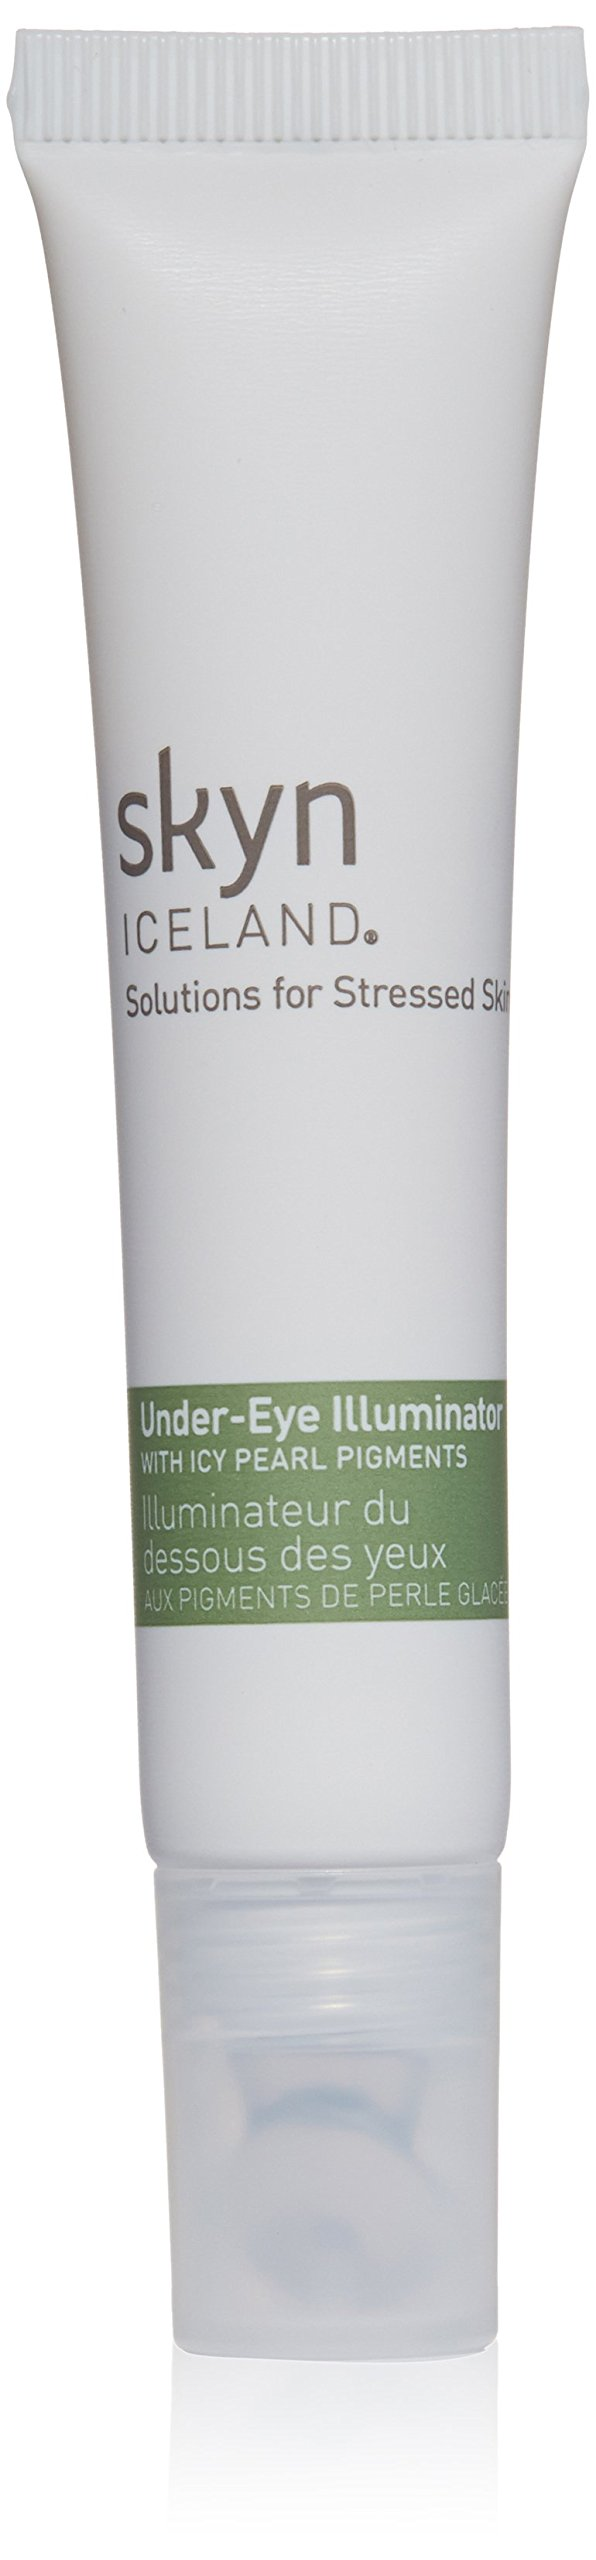 skyn ICELAND Under-Eye Illuminator, 0.5 fl. oz.